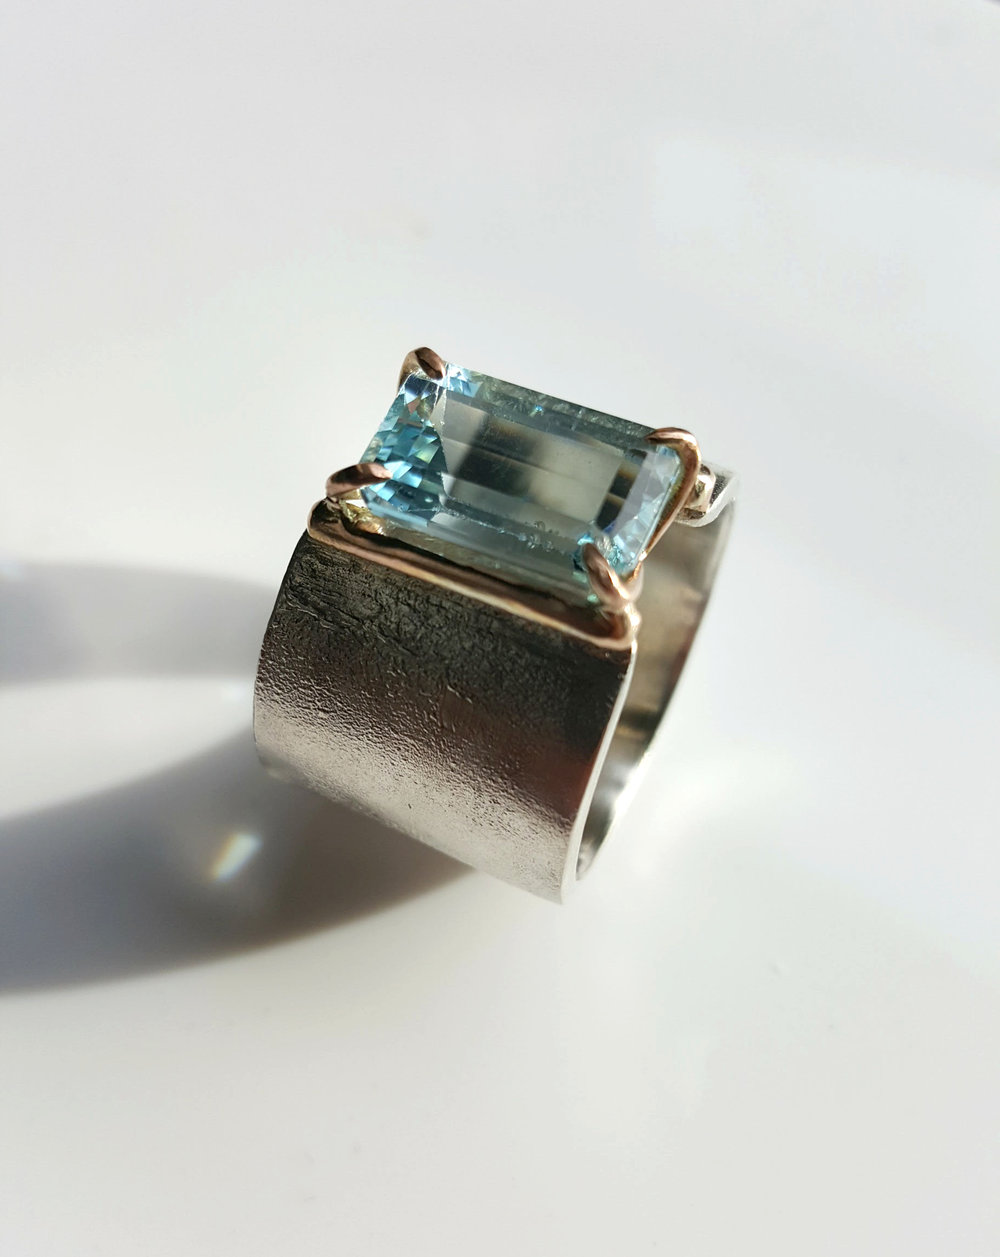 Rosie's Ring  Rosie has been dreaming of an Aquamarine ring for years now, we have discussed it many times and finally it all just fell into place with the right design and stunning stone just before Christmas.  This beautiful Aquamarine is set in 9ct rose gold, sterling silver band with my signature Rippled texture.